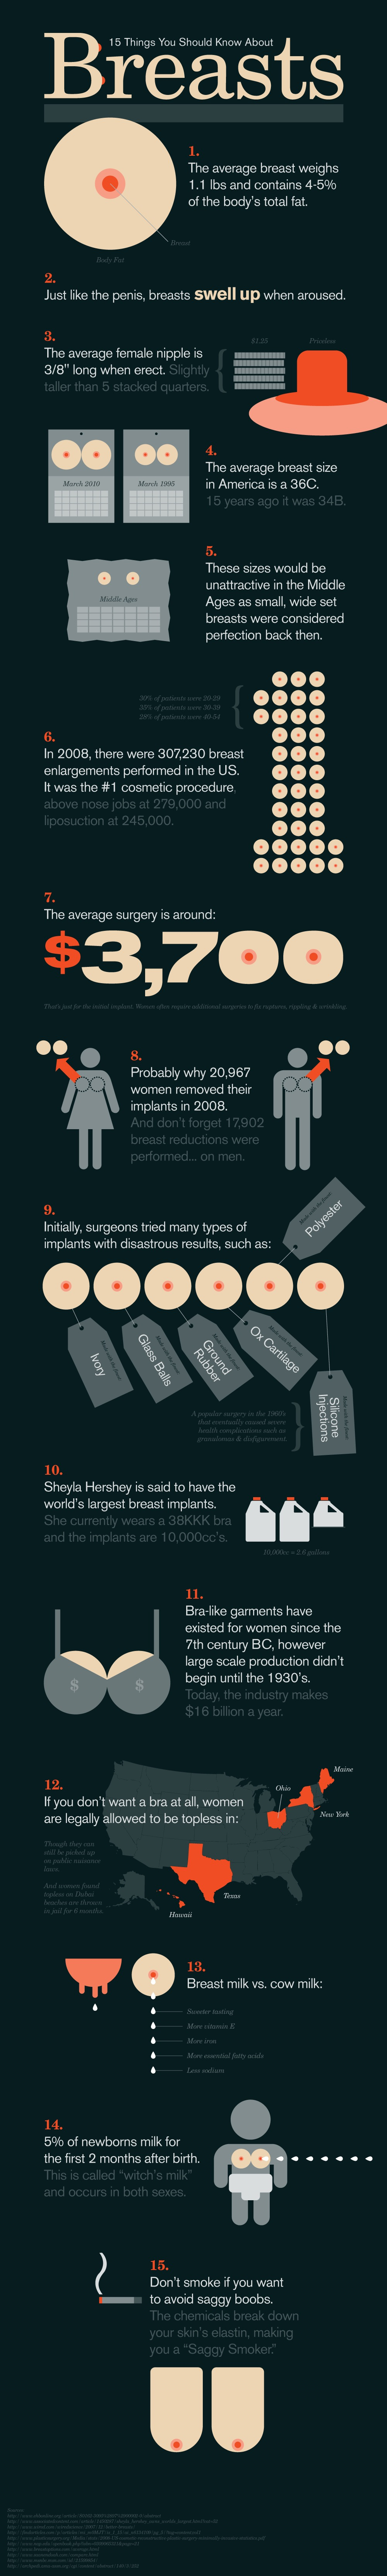 breasts infographic